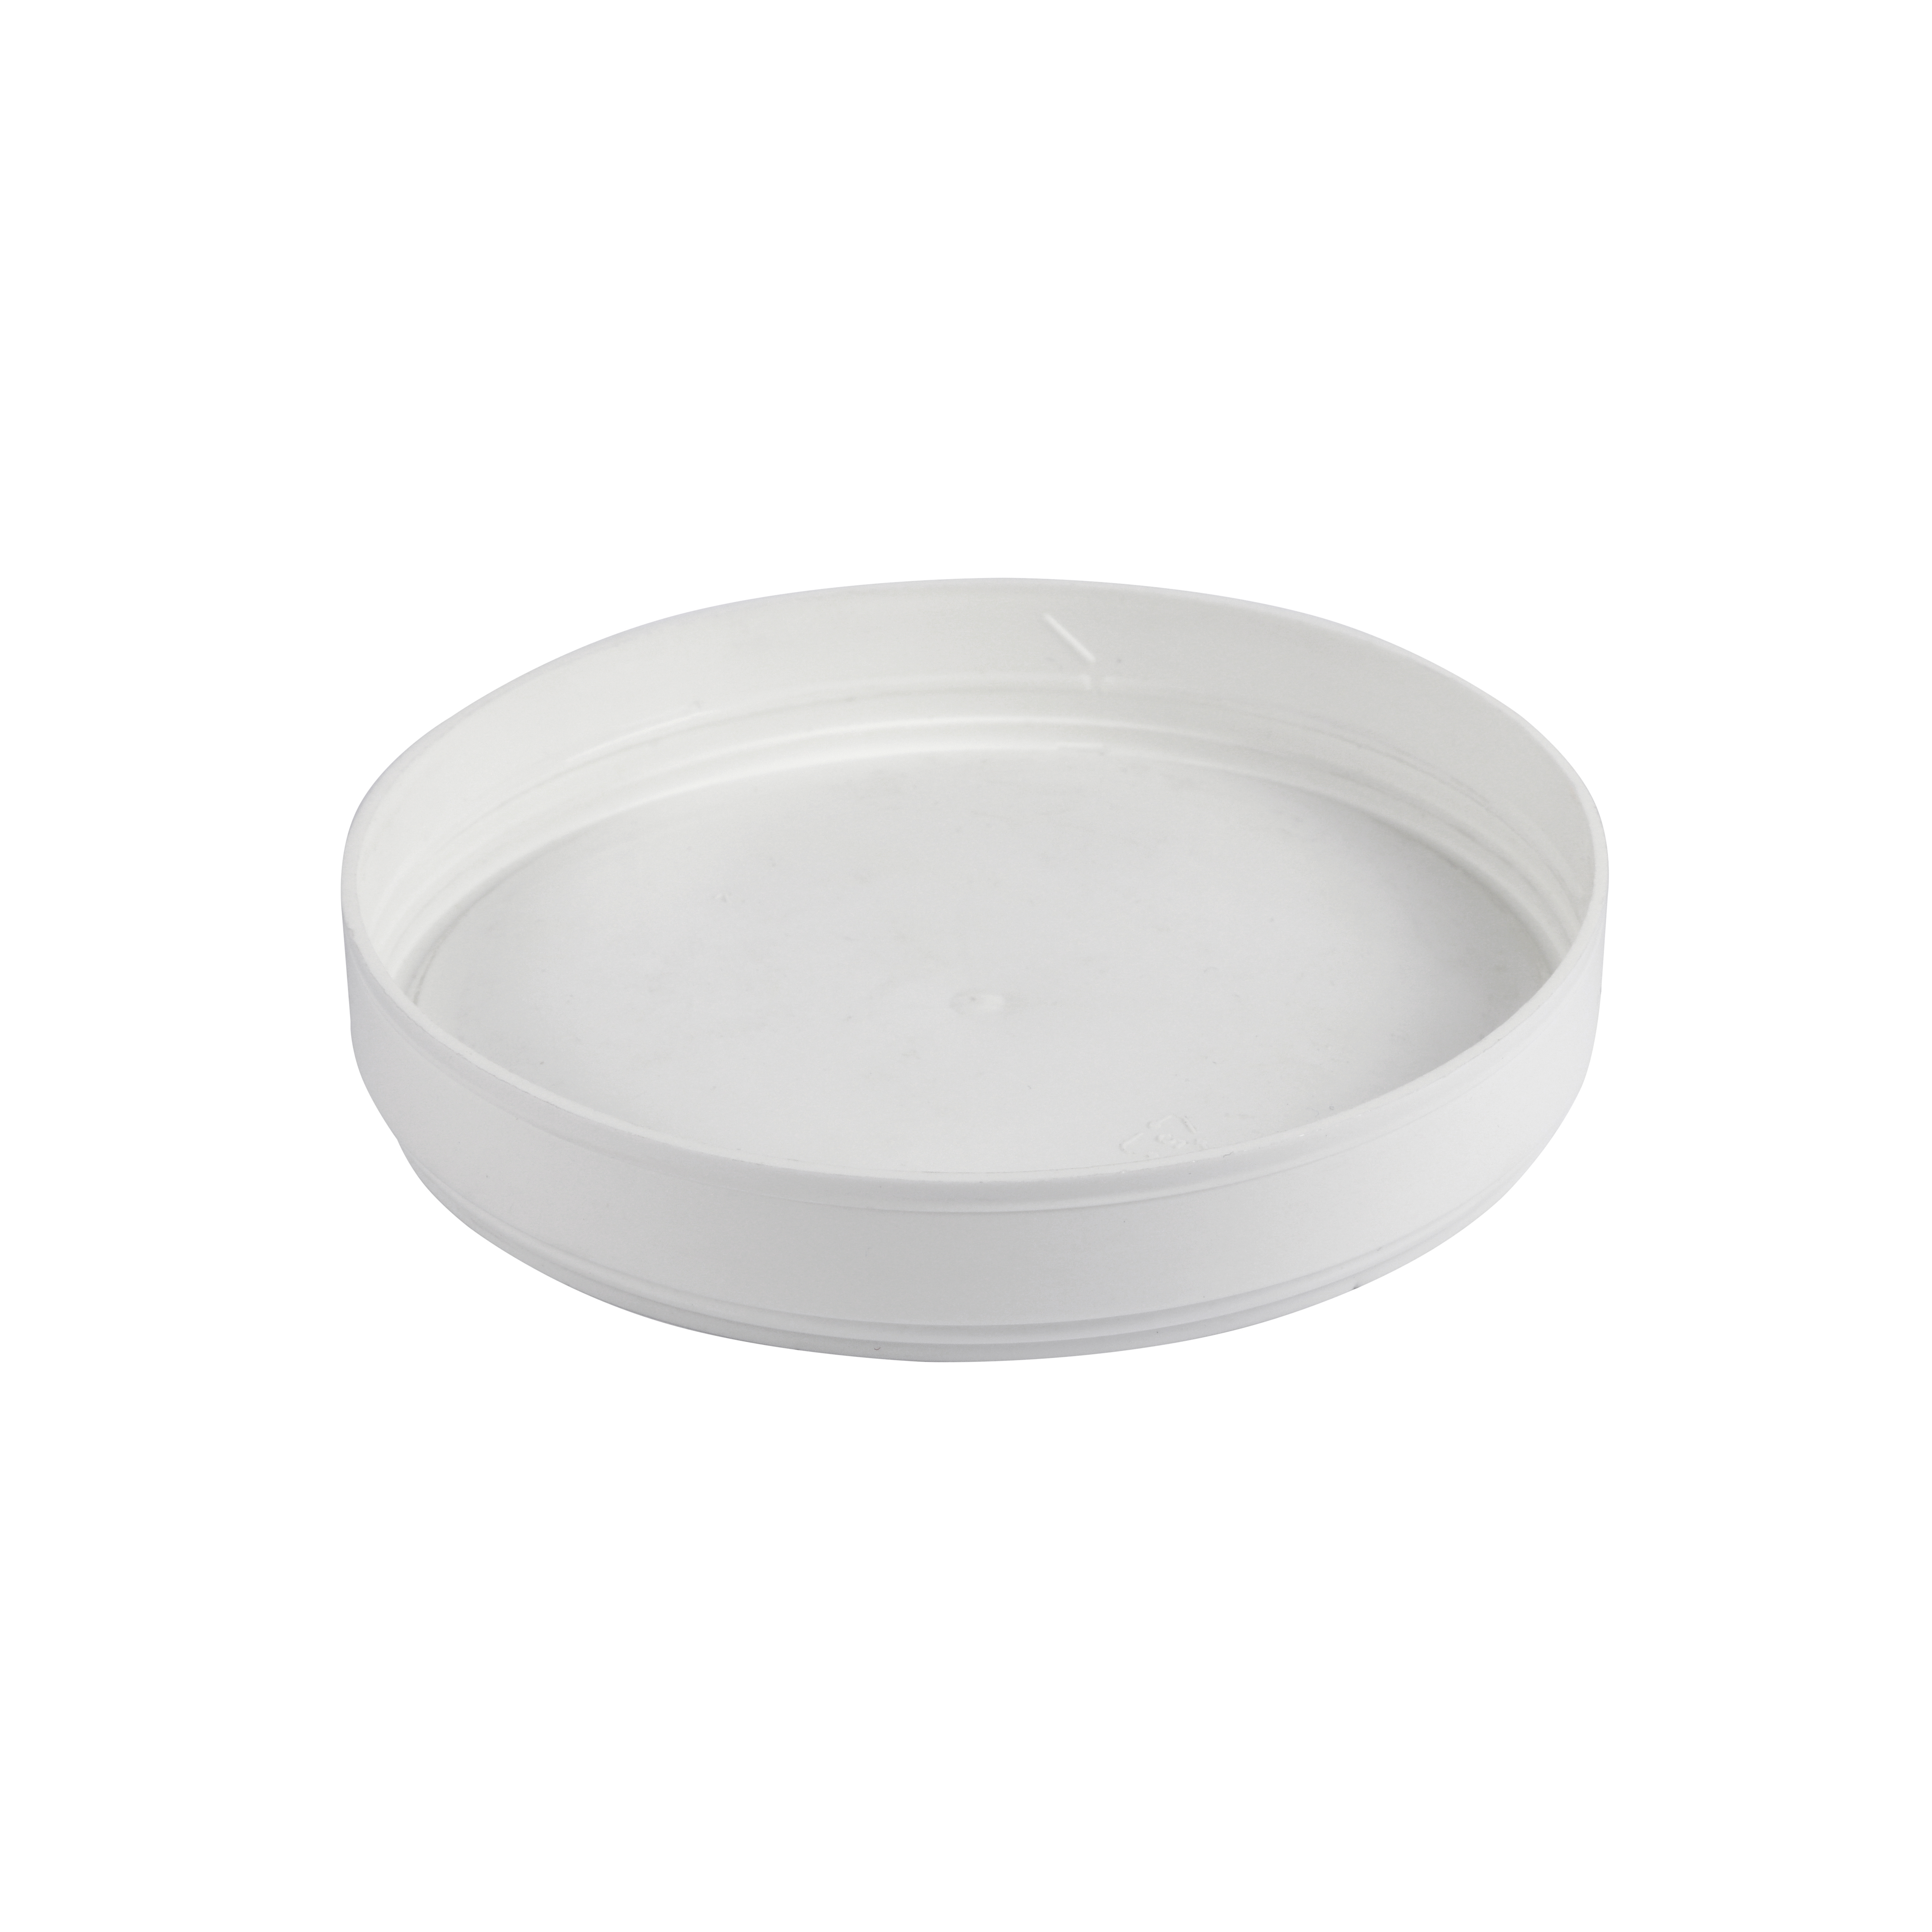 PP round lid 118 mm diameter for cardboard pots and cups